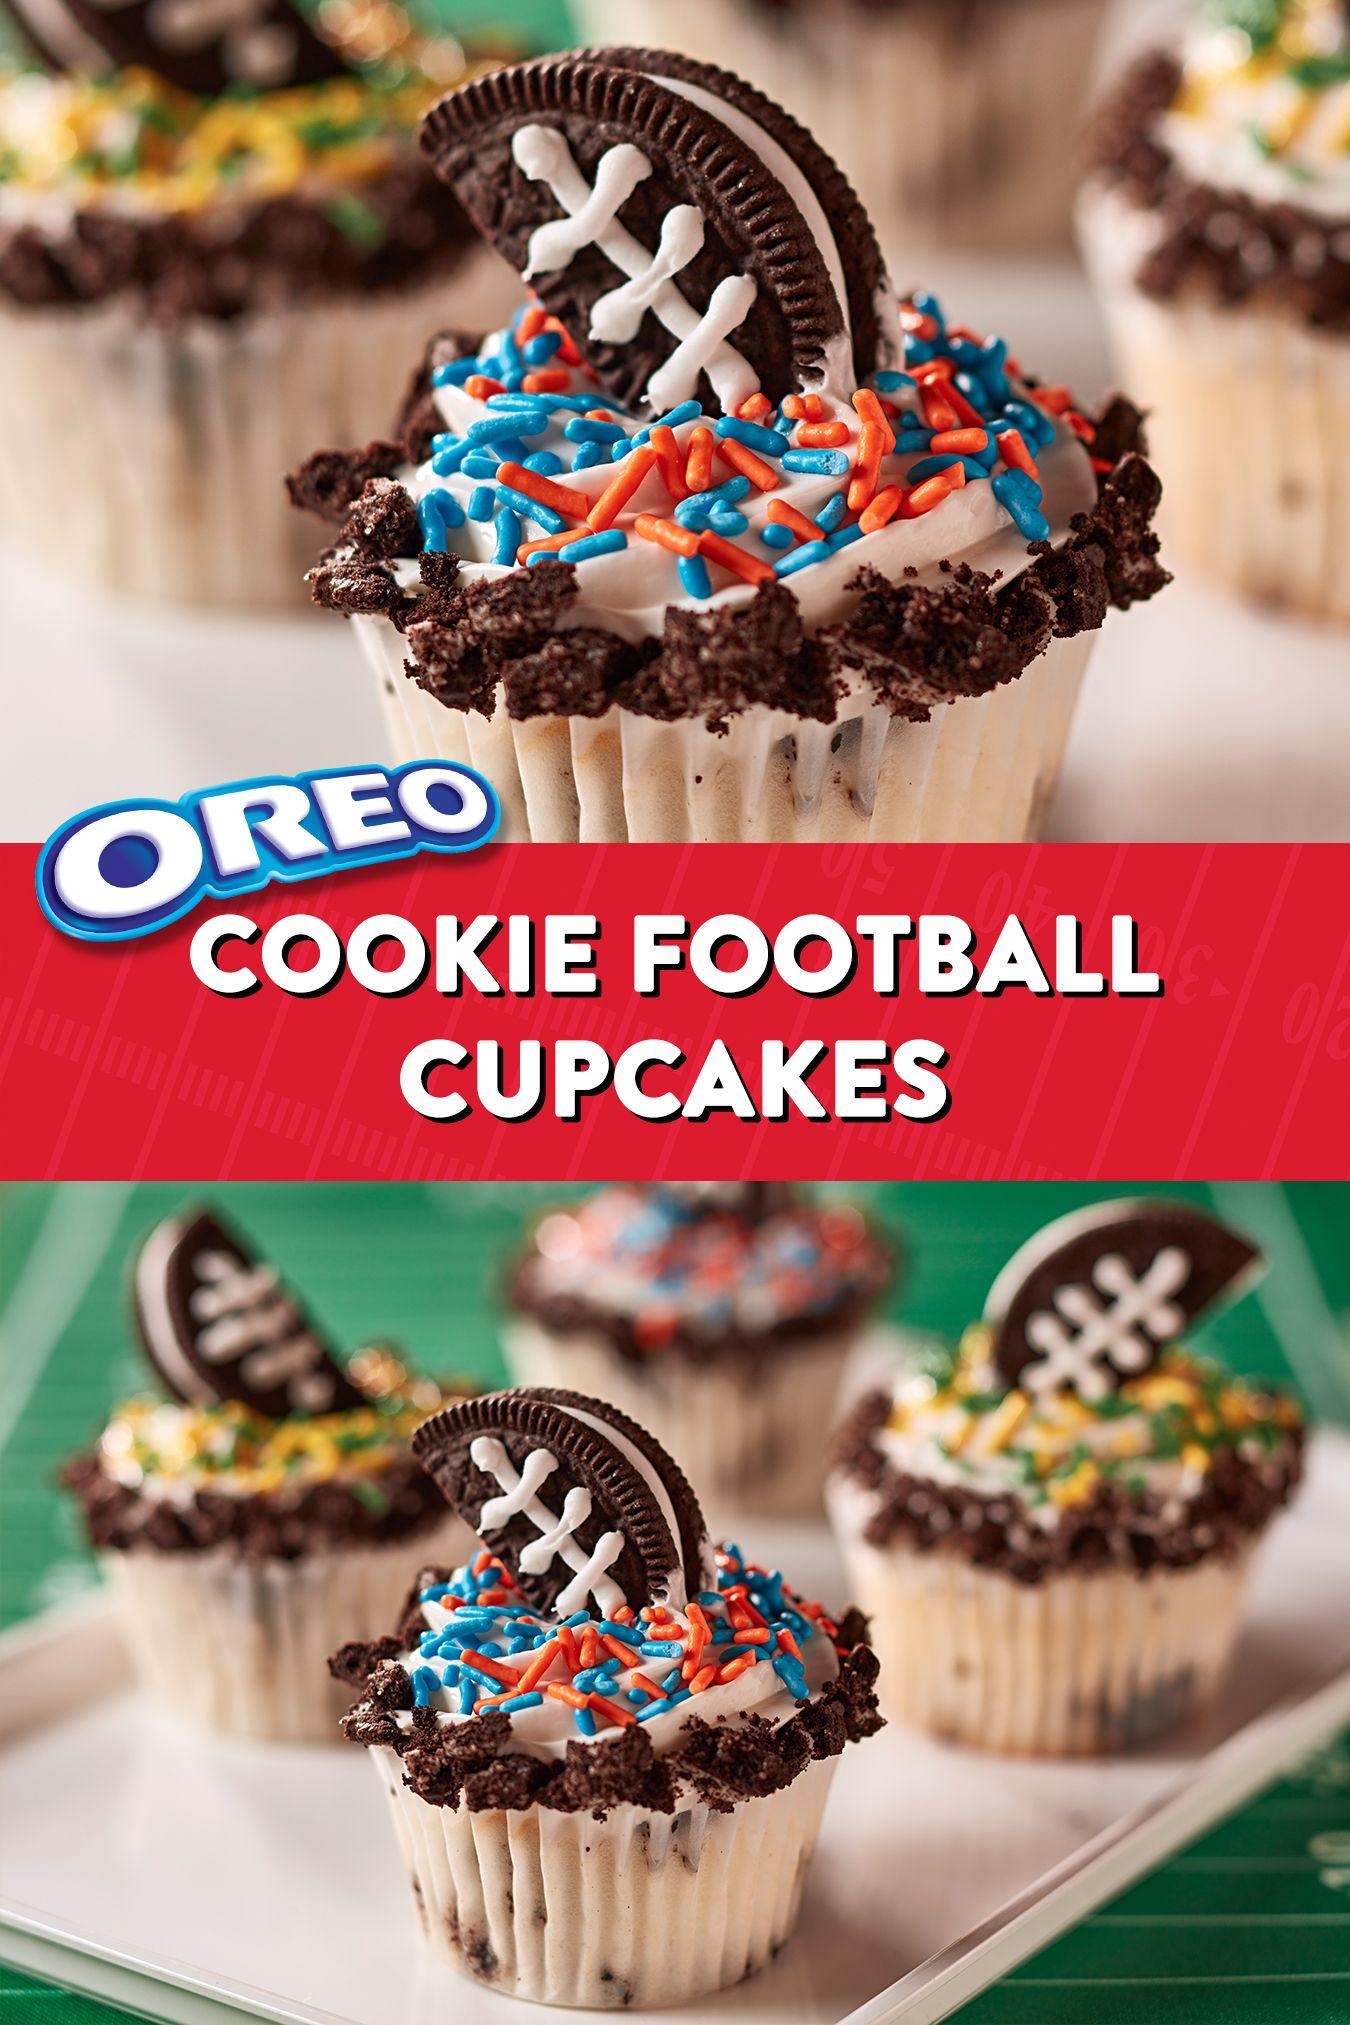 Oreo Cookie Football Cupcakes Recipe In 2020 Football Cupcakes